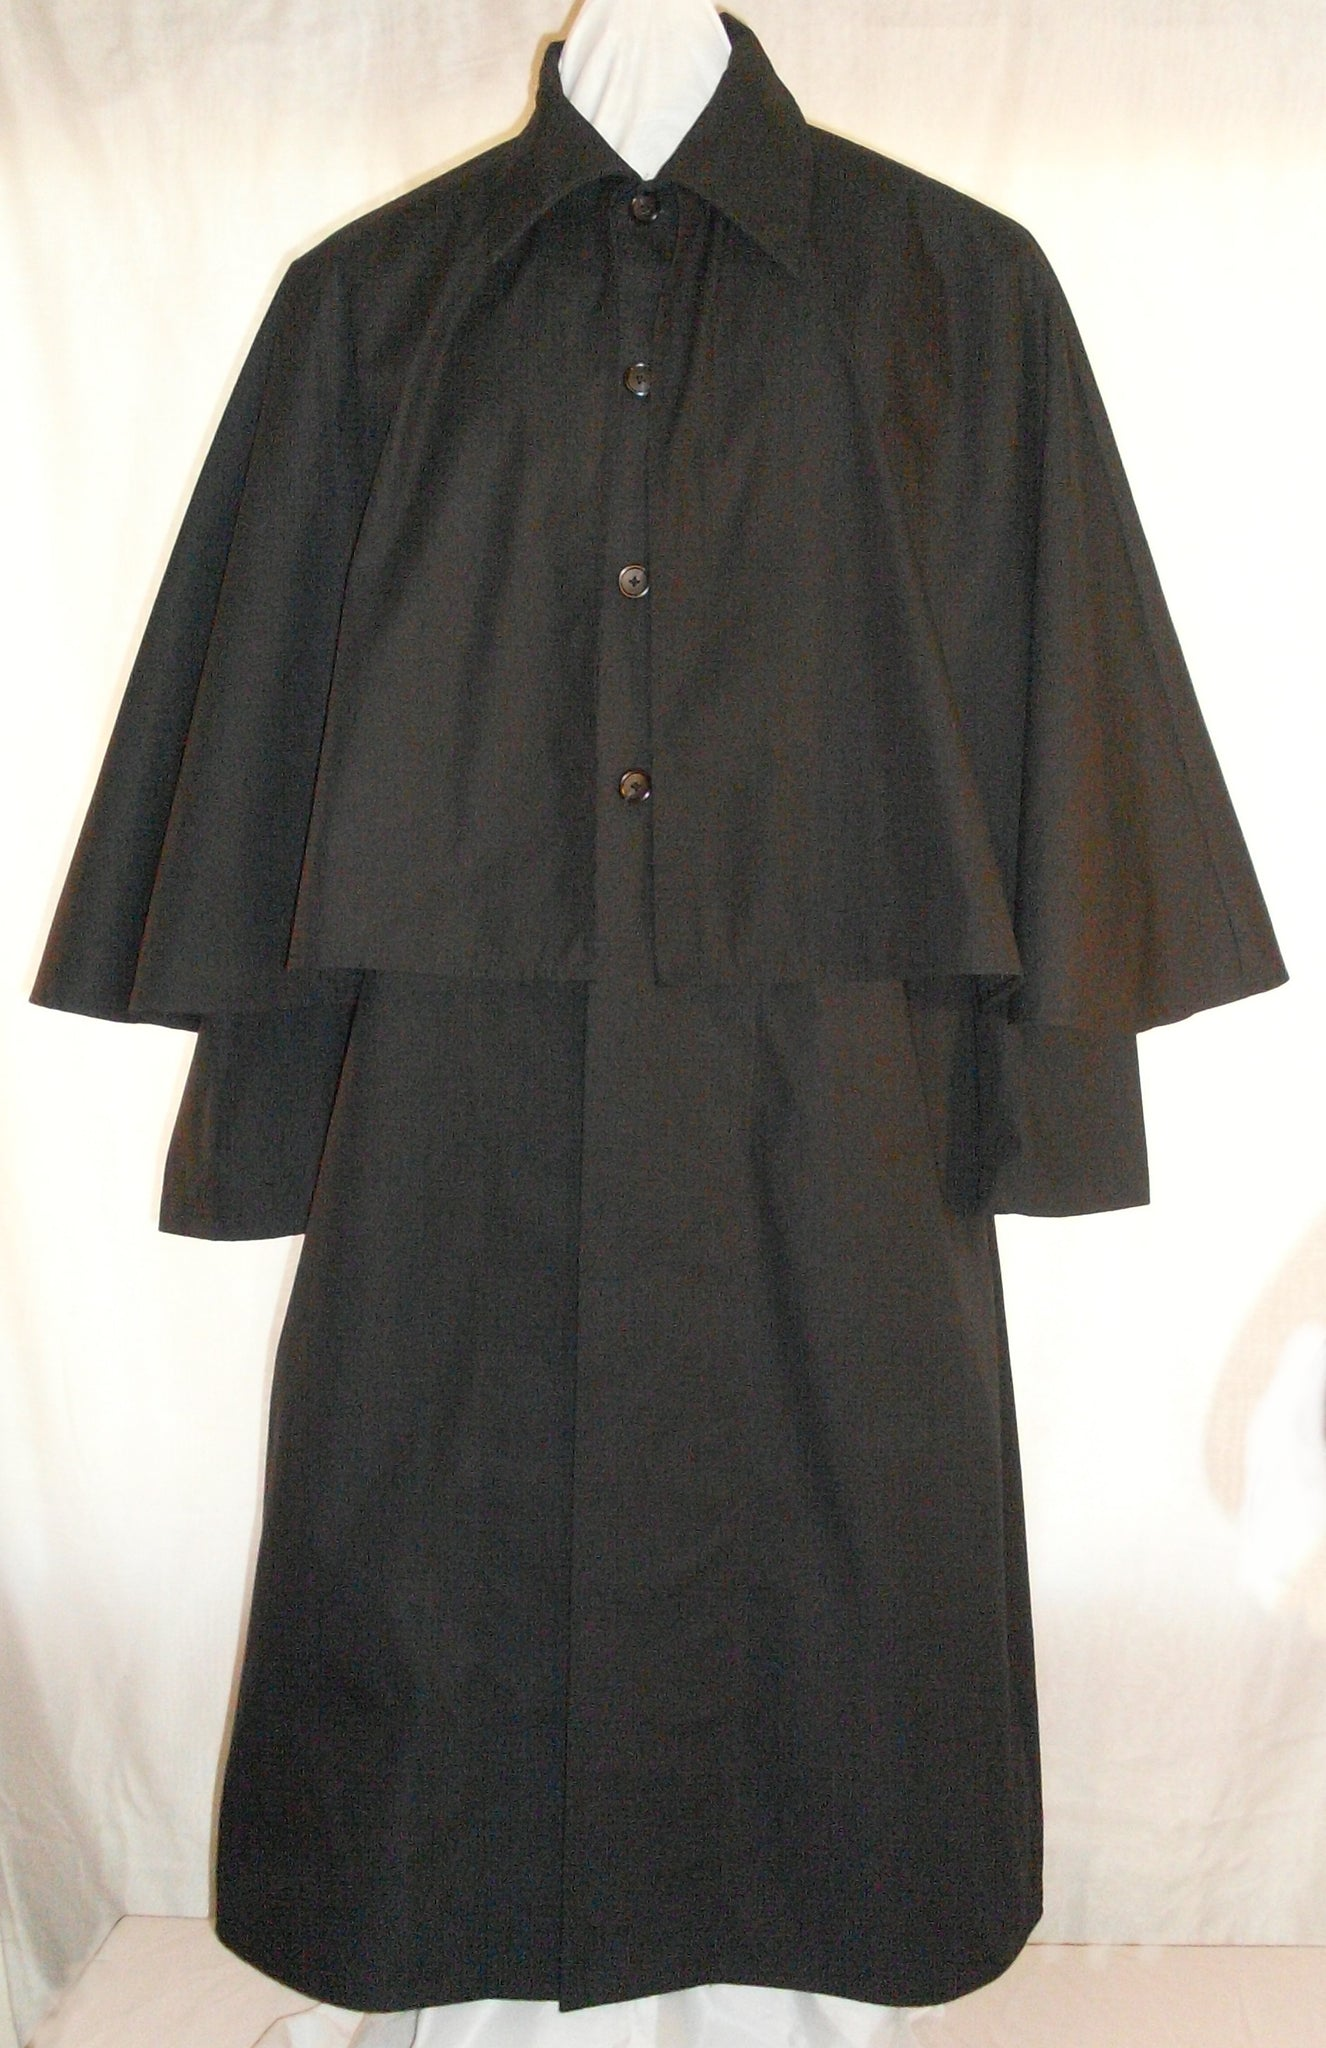 Inverness Coat by White Pavilion, front view. This coat is ideal for Victorian, Steampunk, Goth and vampire costumes.